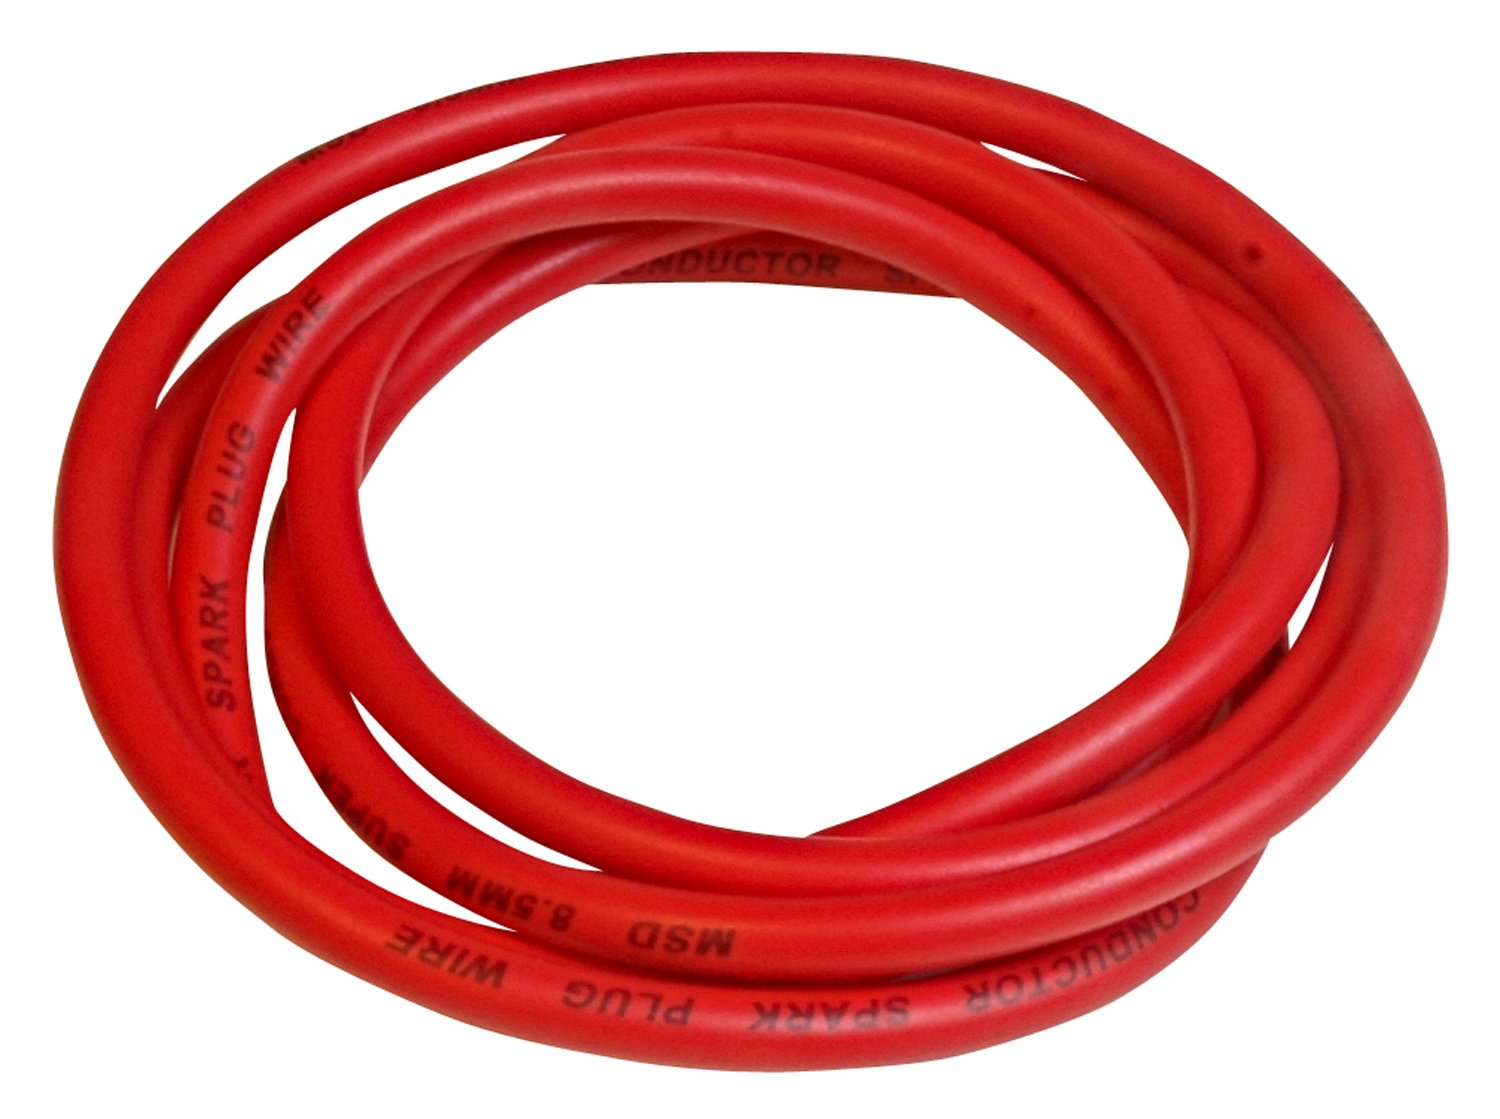 34039 - Super Conductor 8.5mm Wire, Red, 6' Bulk Image